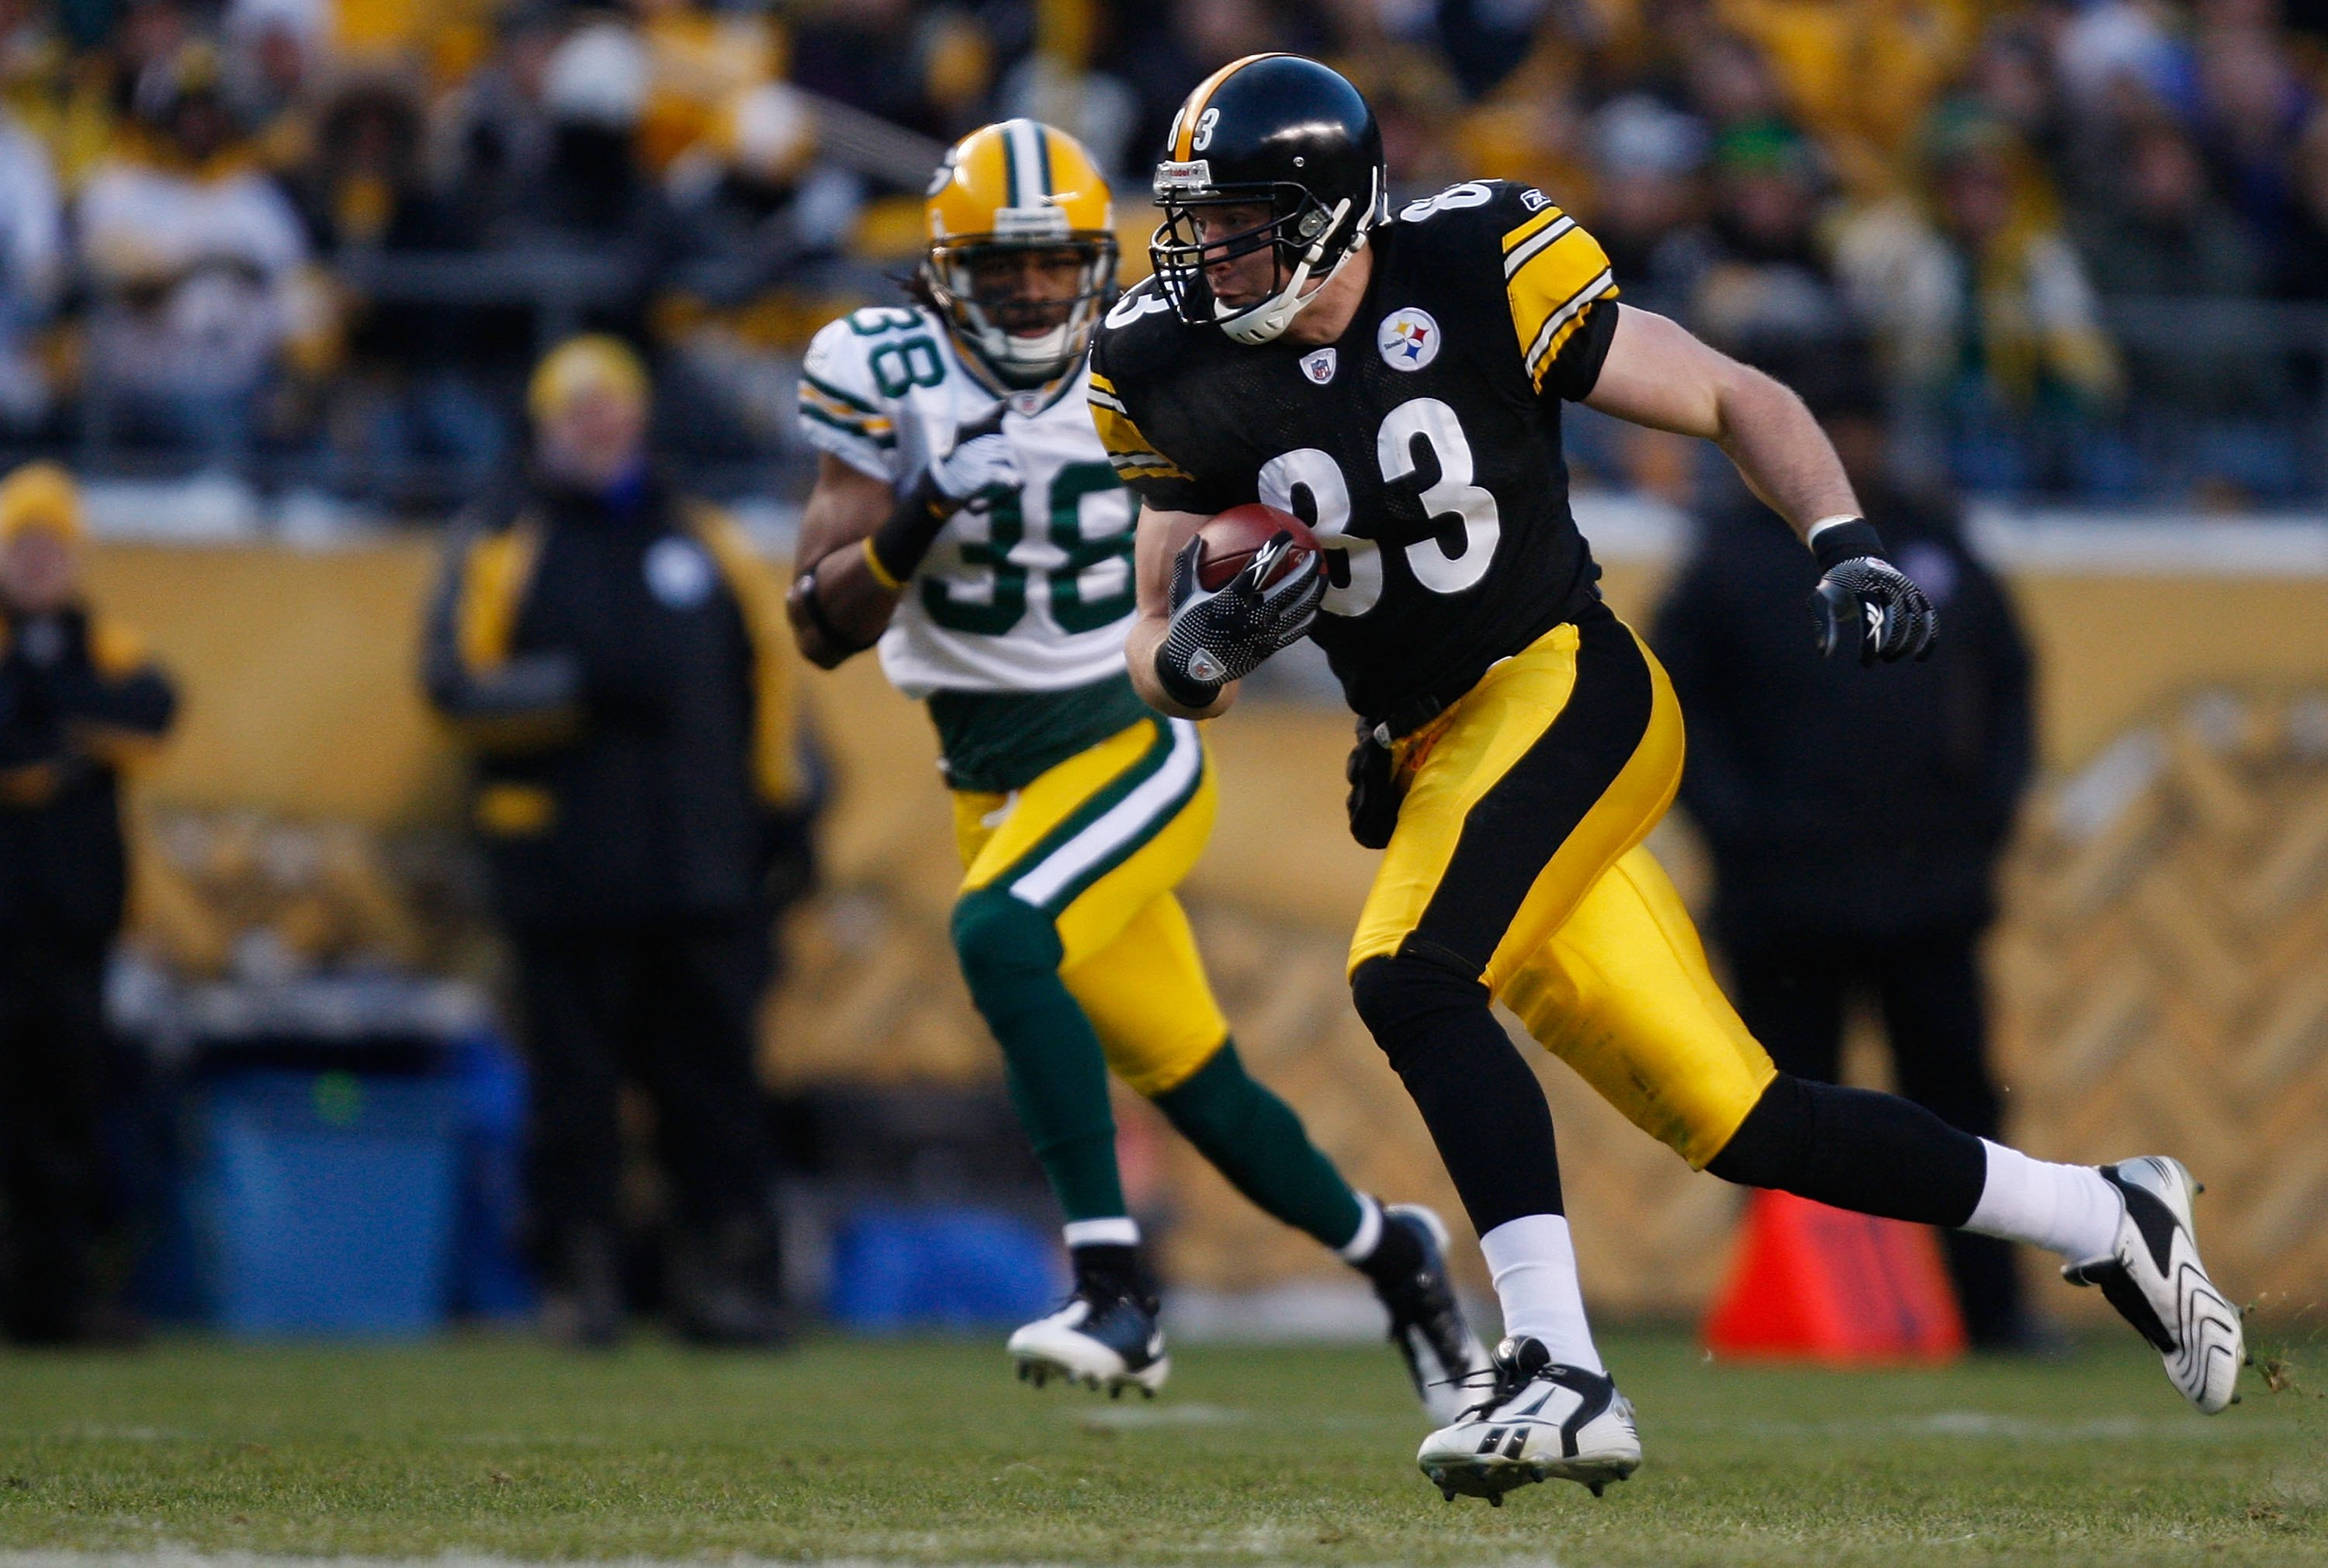 PITTSBURGH - DECEMBER 20: Heath Miller #83 of the Pittsburgh Steelers runs with the ball from Tramon Williams #38 of the Green Bay Packers during the game on December 20, 2009 at Heinz Field in Pittsburgh, Pennsylvania. (Photo by Jared Wickerham/Getty Ima